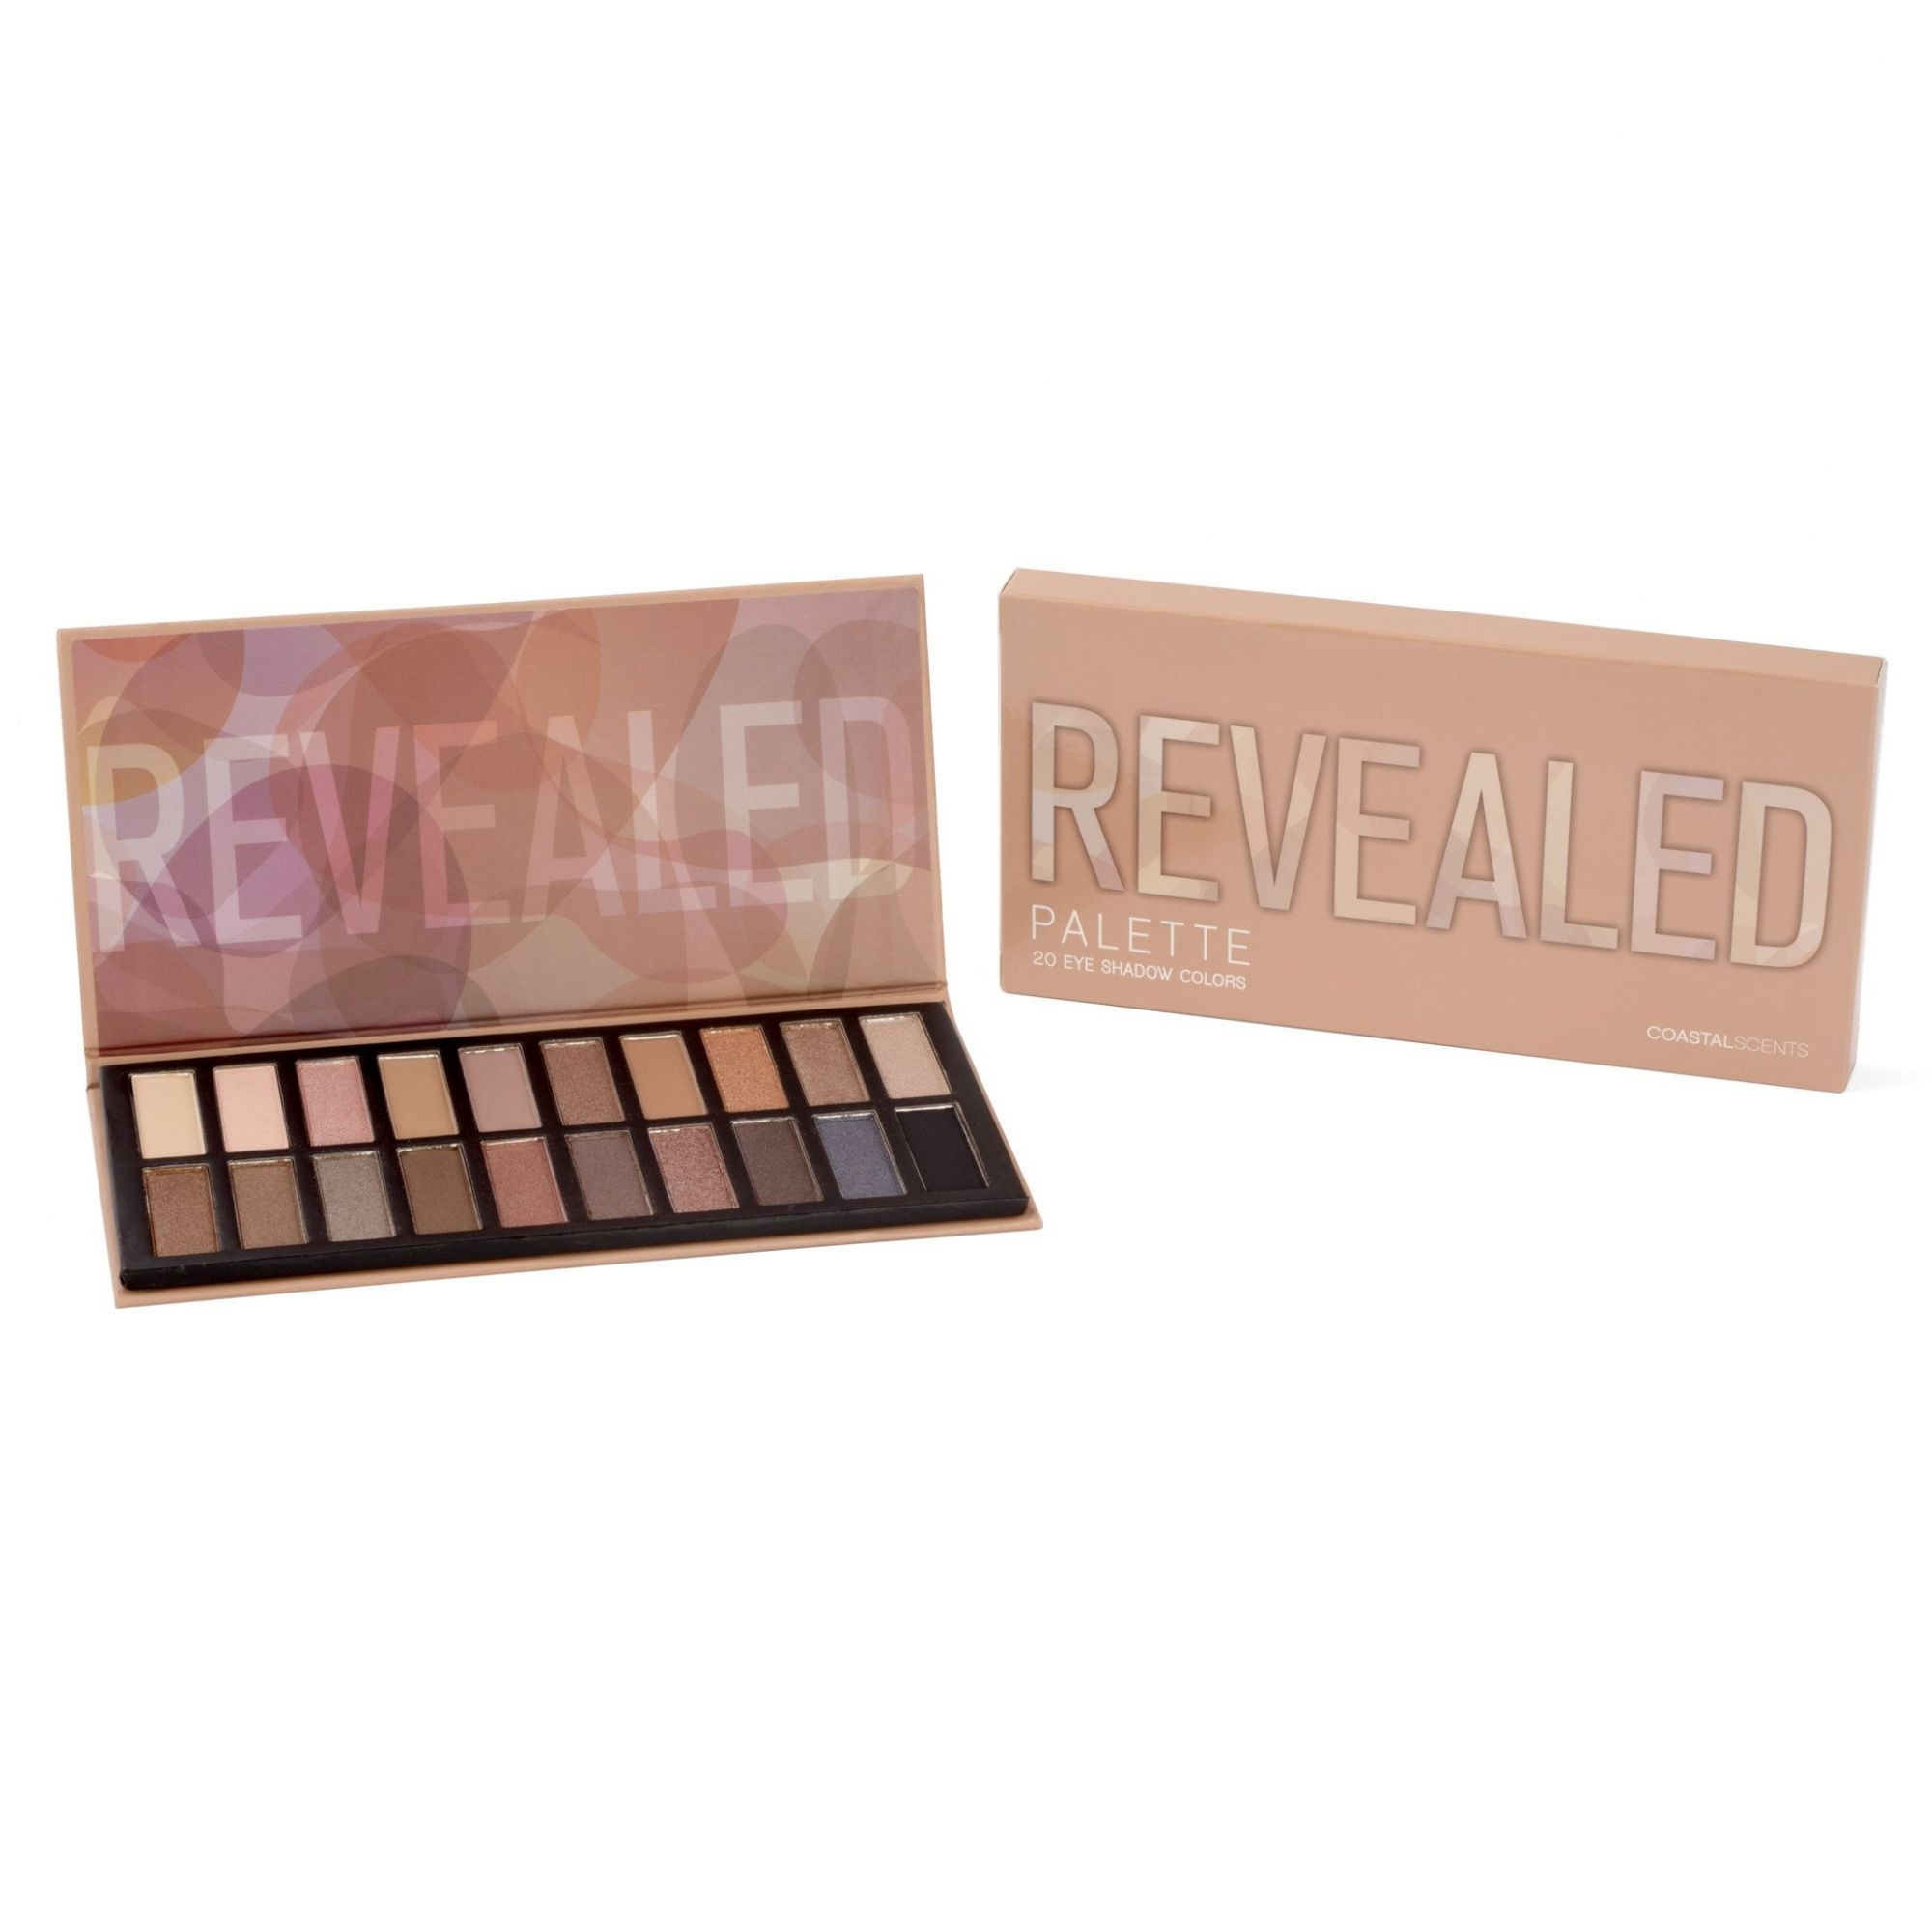 REVEALED EYESHADOW PALETTE COM 20 SOMBRAS | COASTAL SCENTS